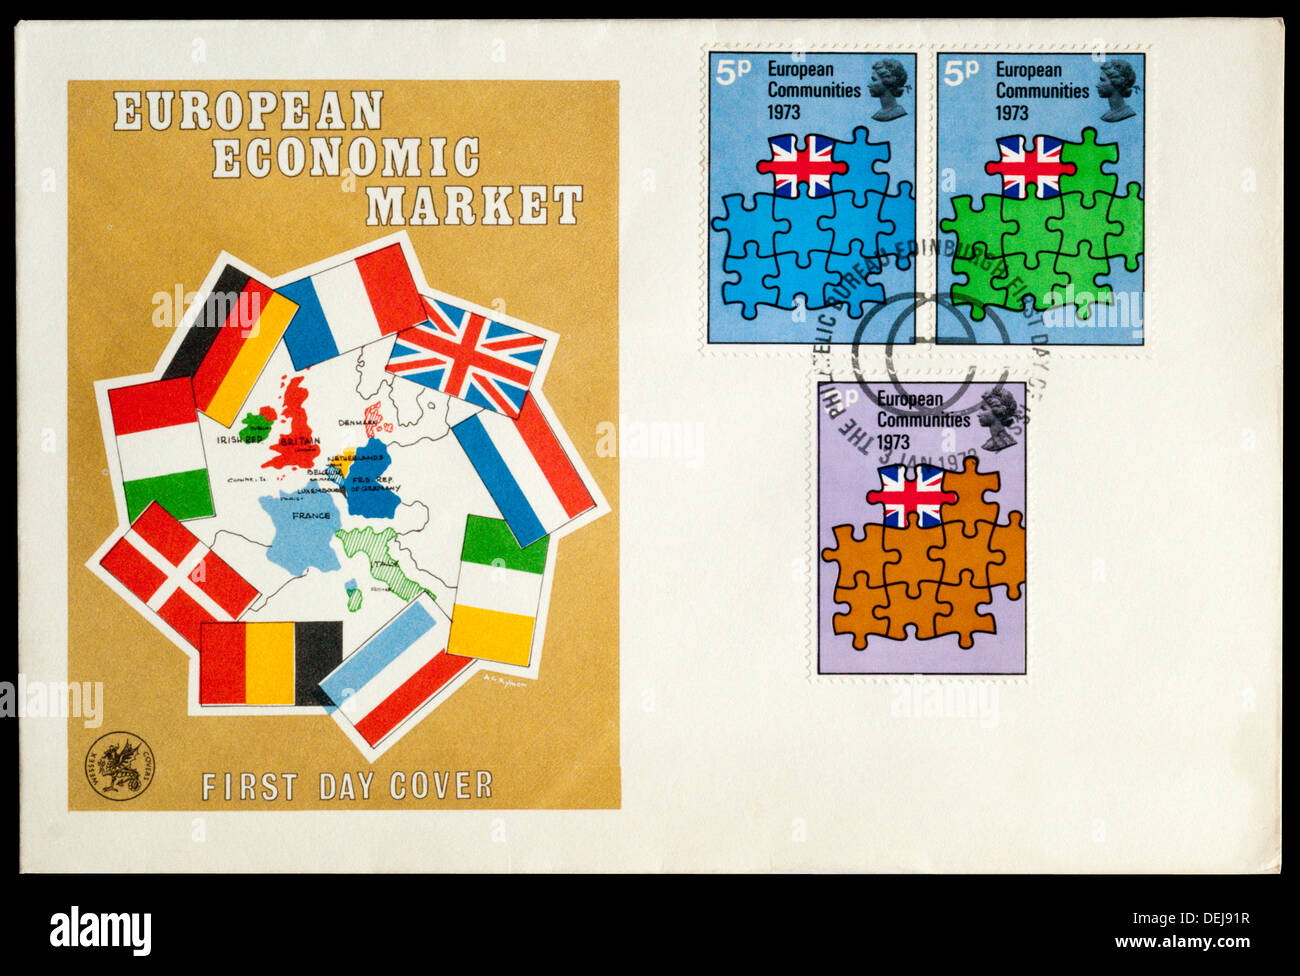 First Day Cover celebrating the European Economic Market. - Stock Image